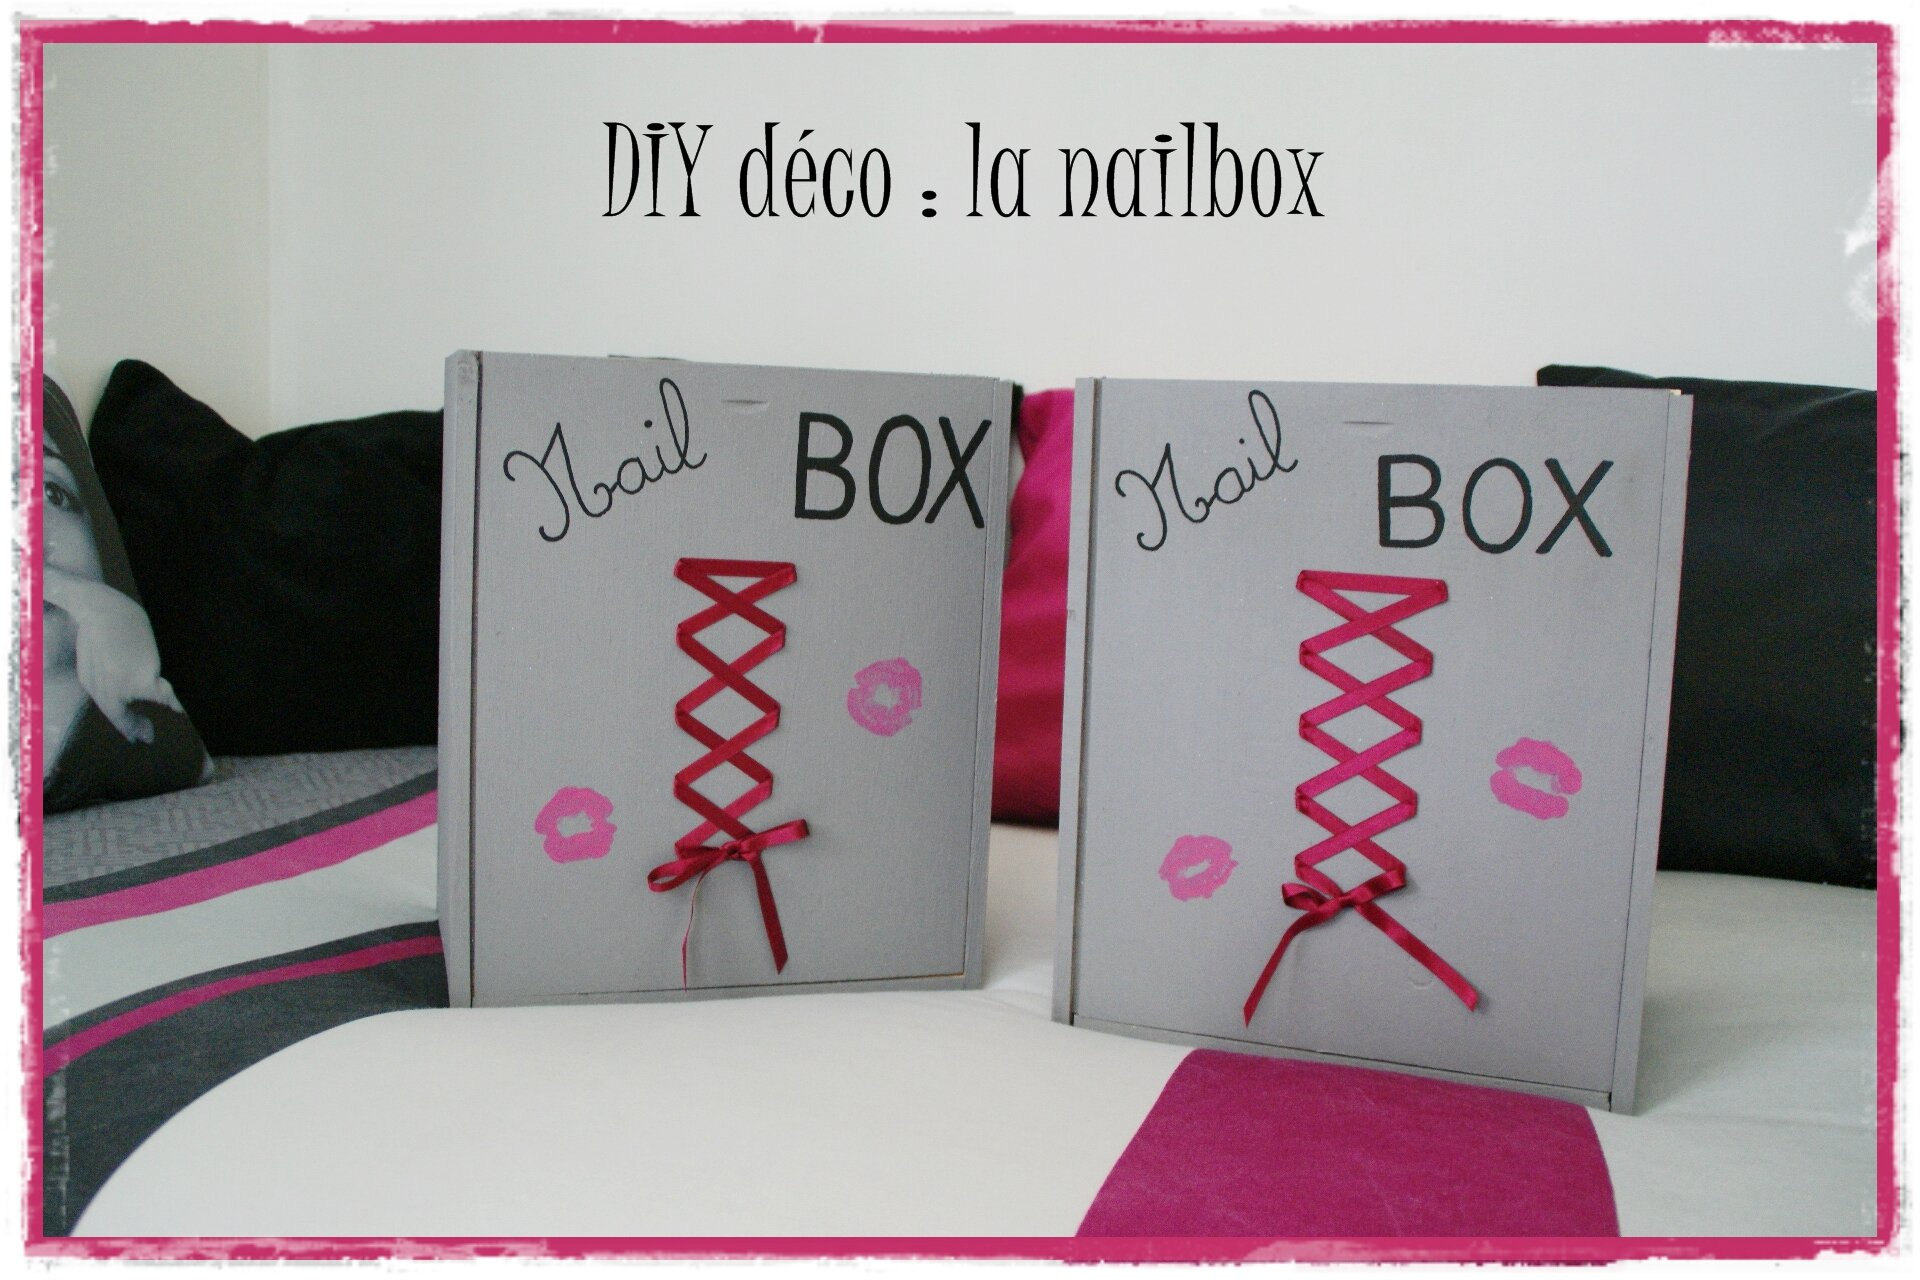 diy d co chambre d 39 ado des nailbox les p 39 tites d cos. Black Bedroom Furniture Sets. Home Design Ideas